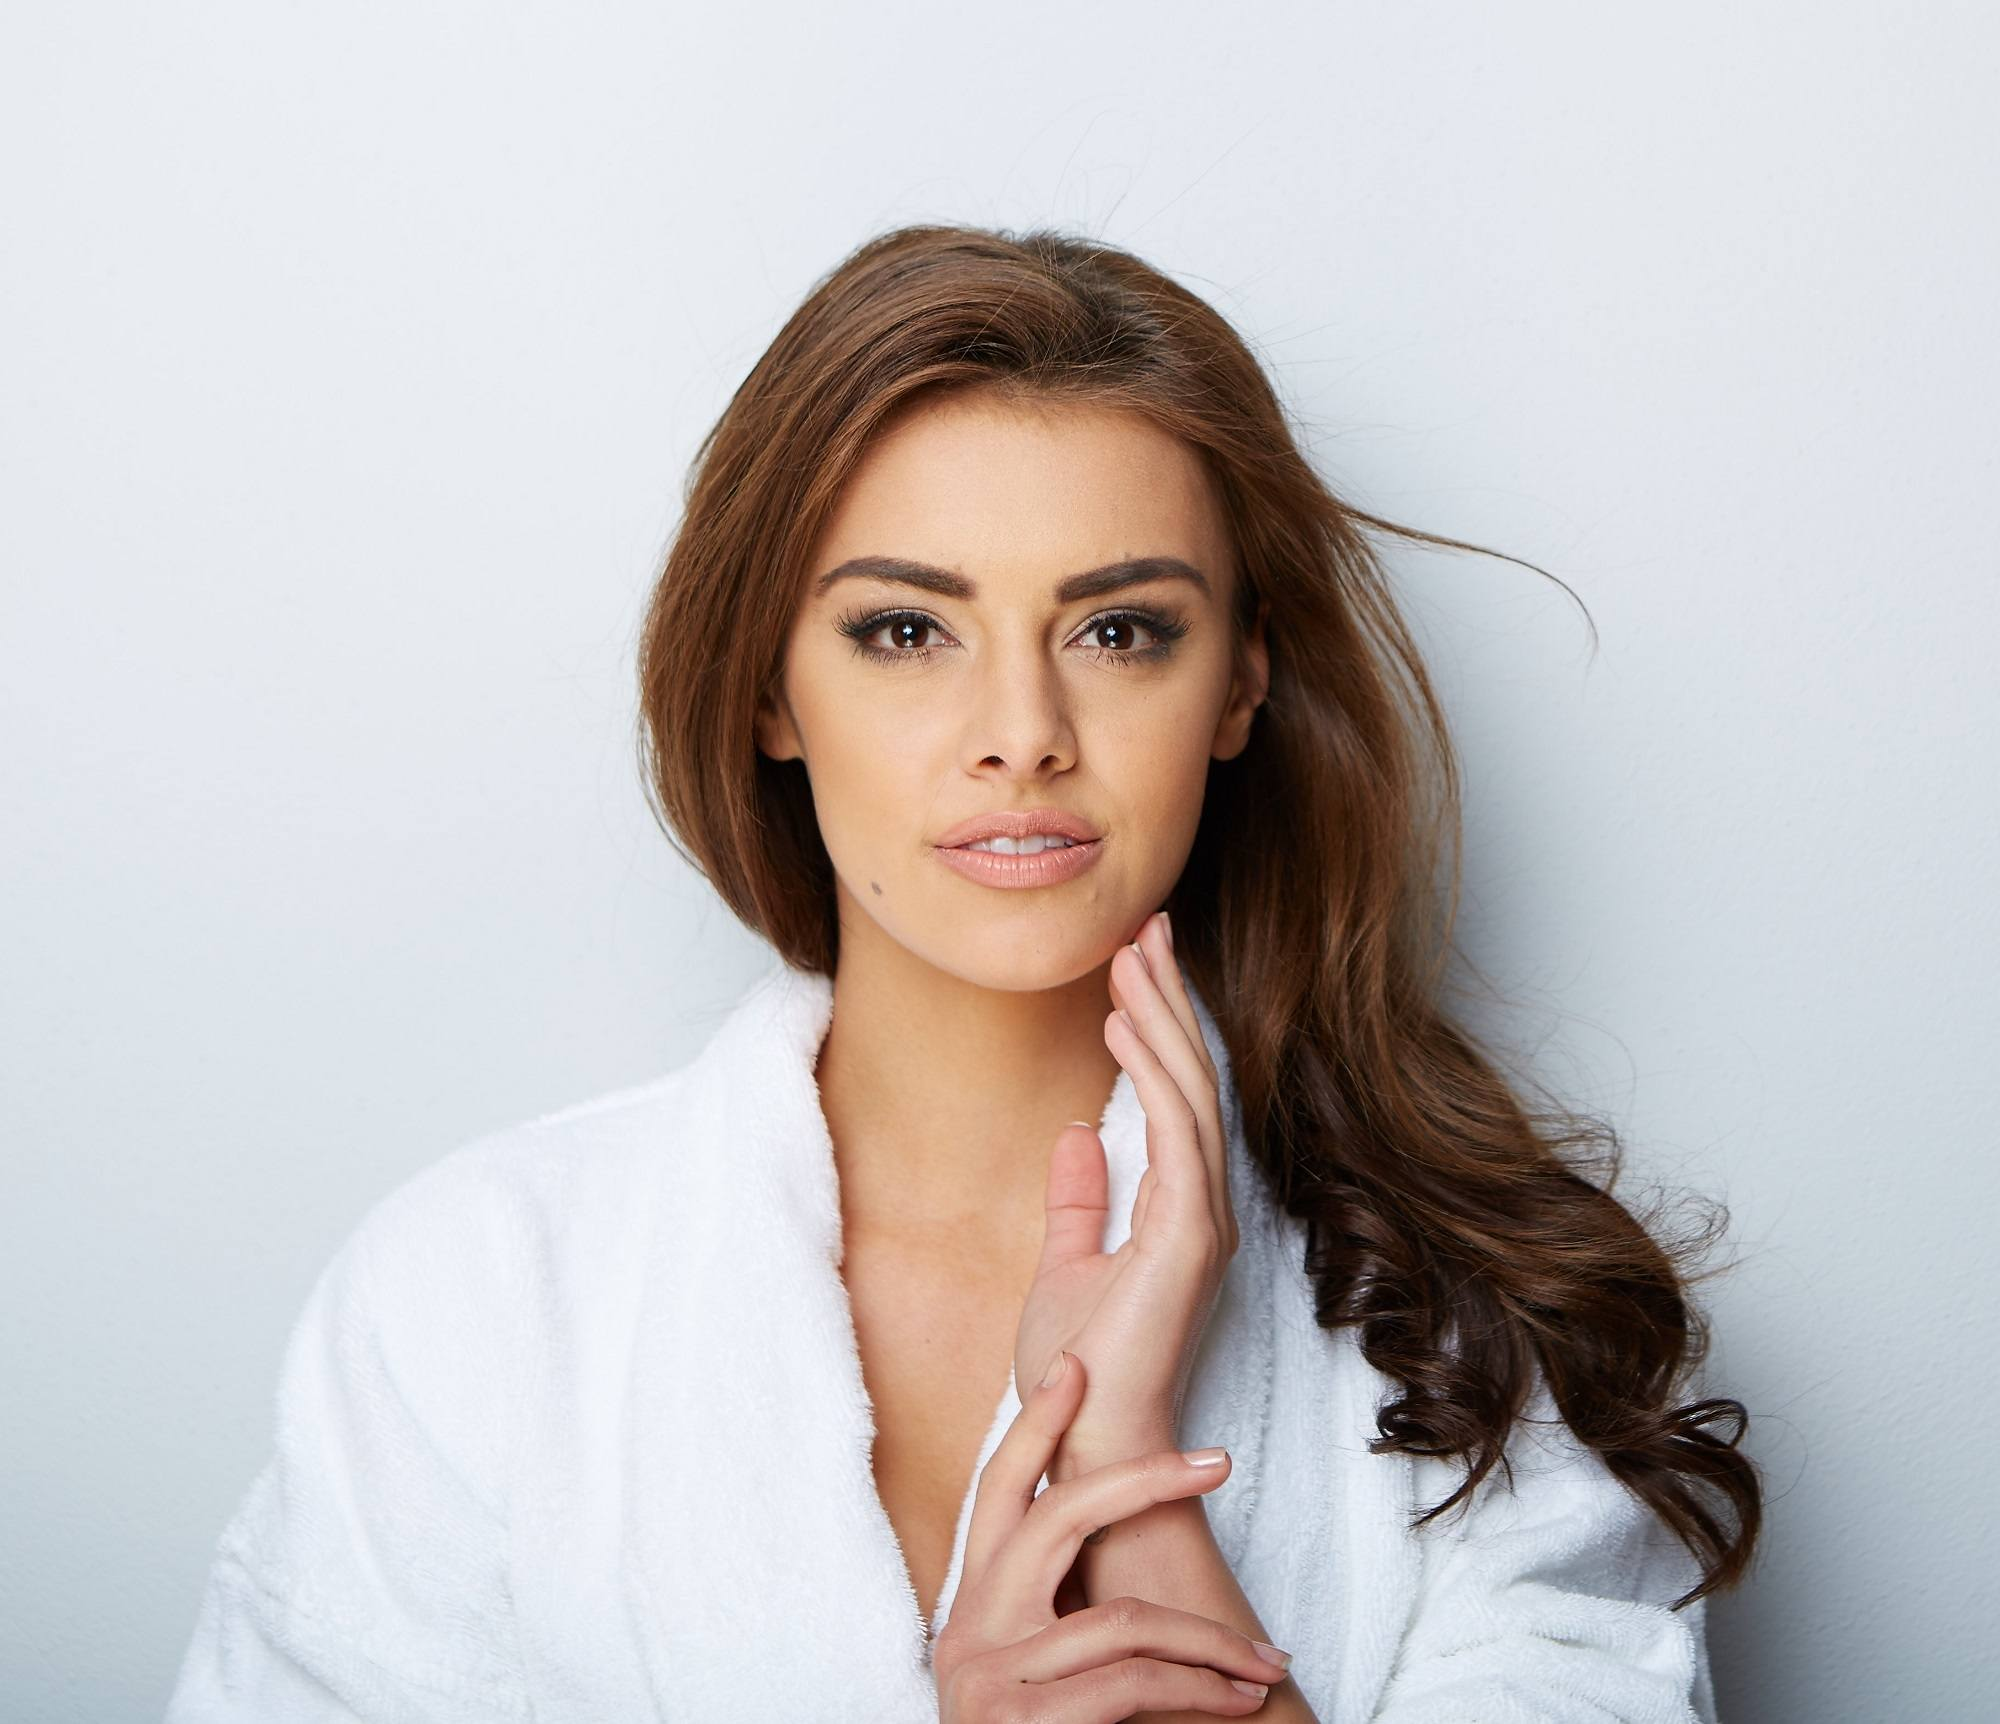 Remedies for dry hair: Closeup shot of woman with long brown hair wearing a white robe